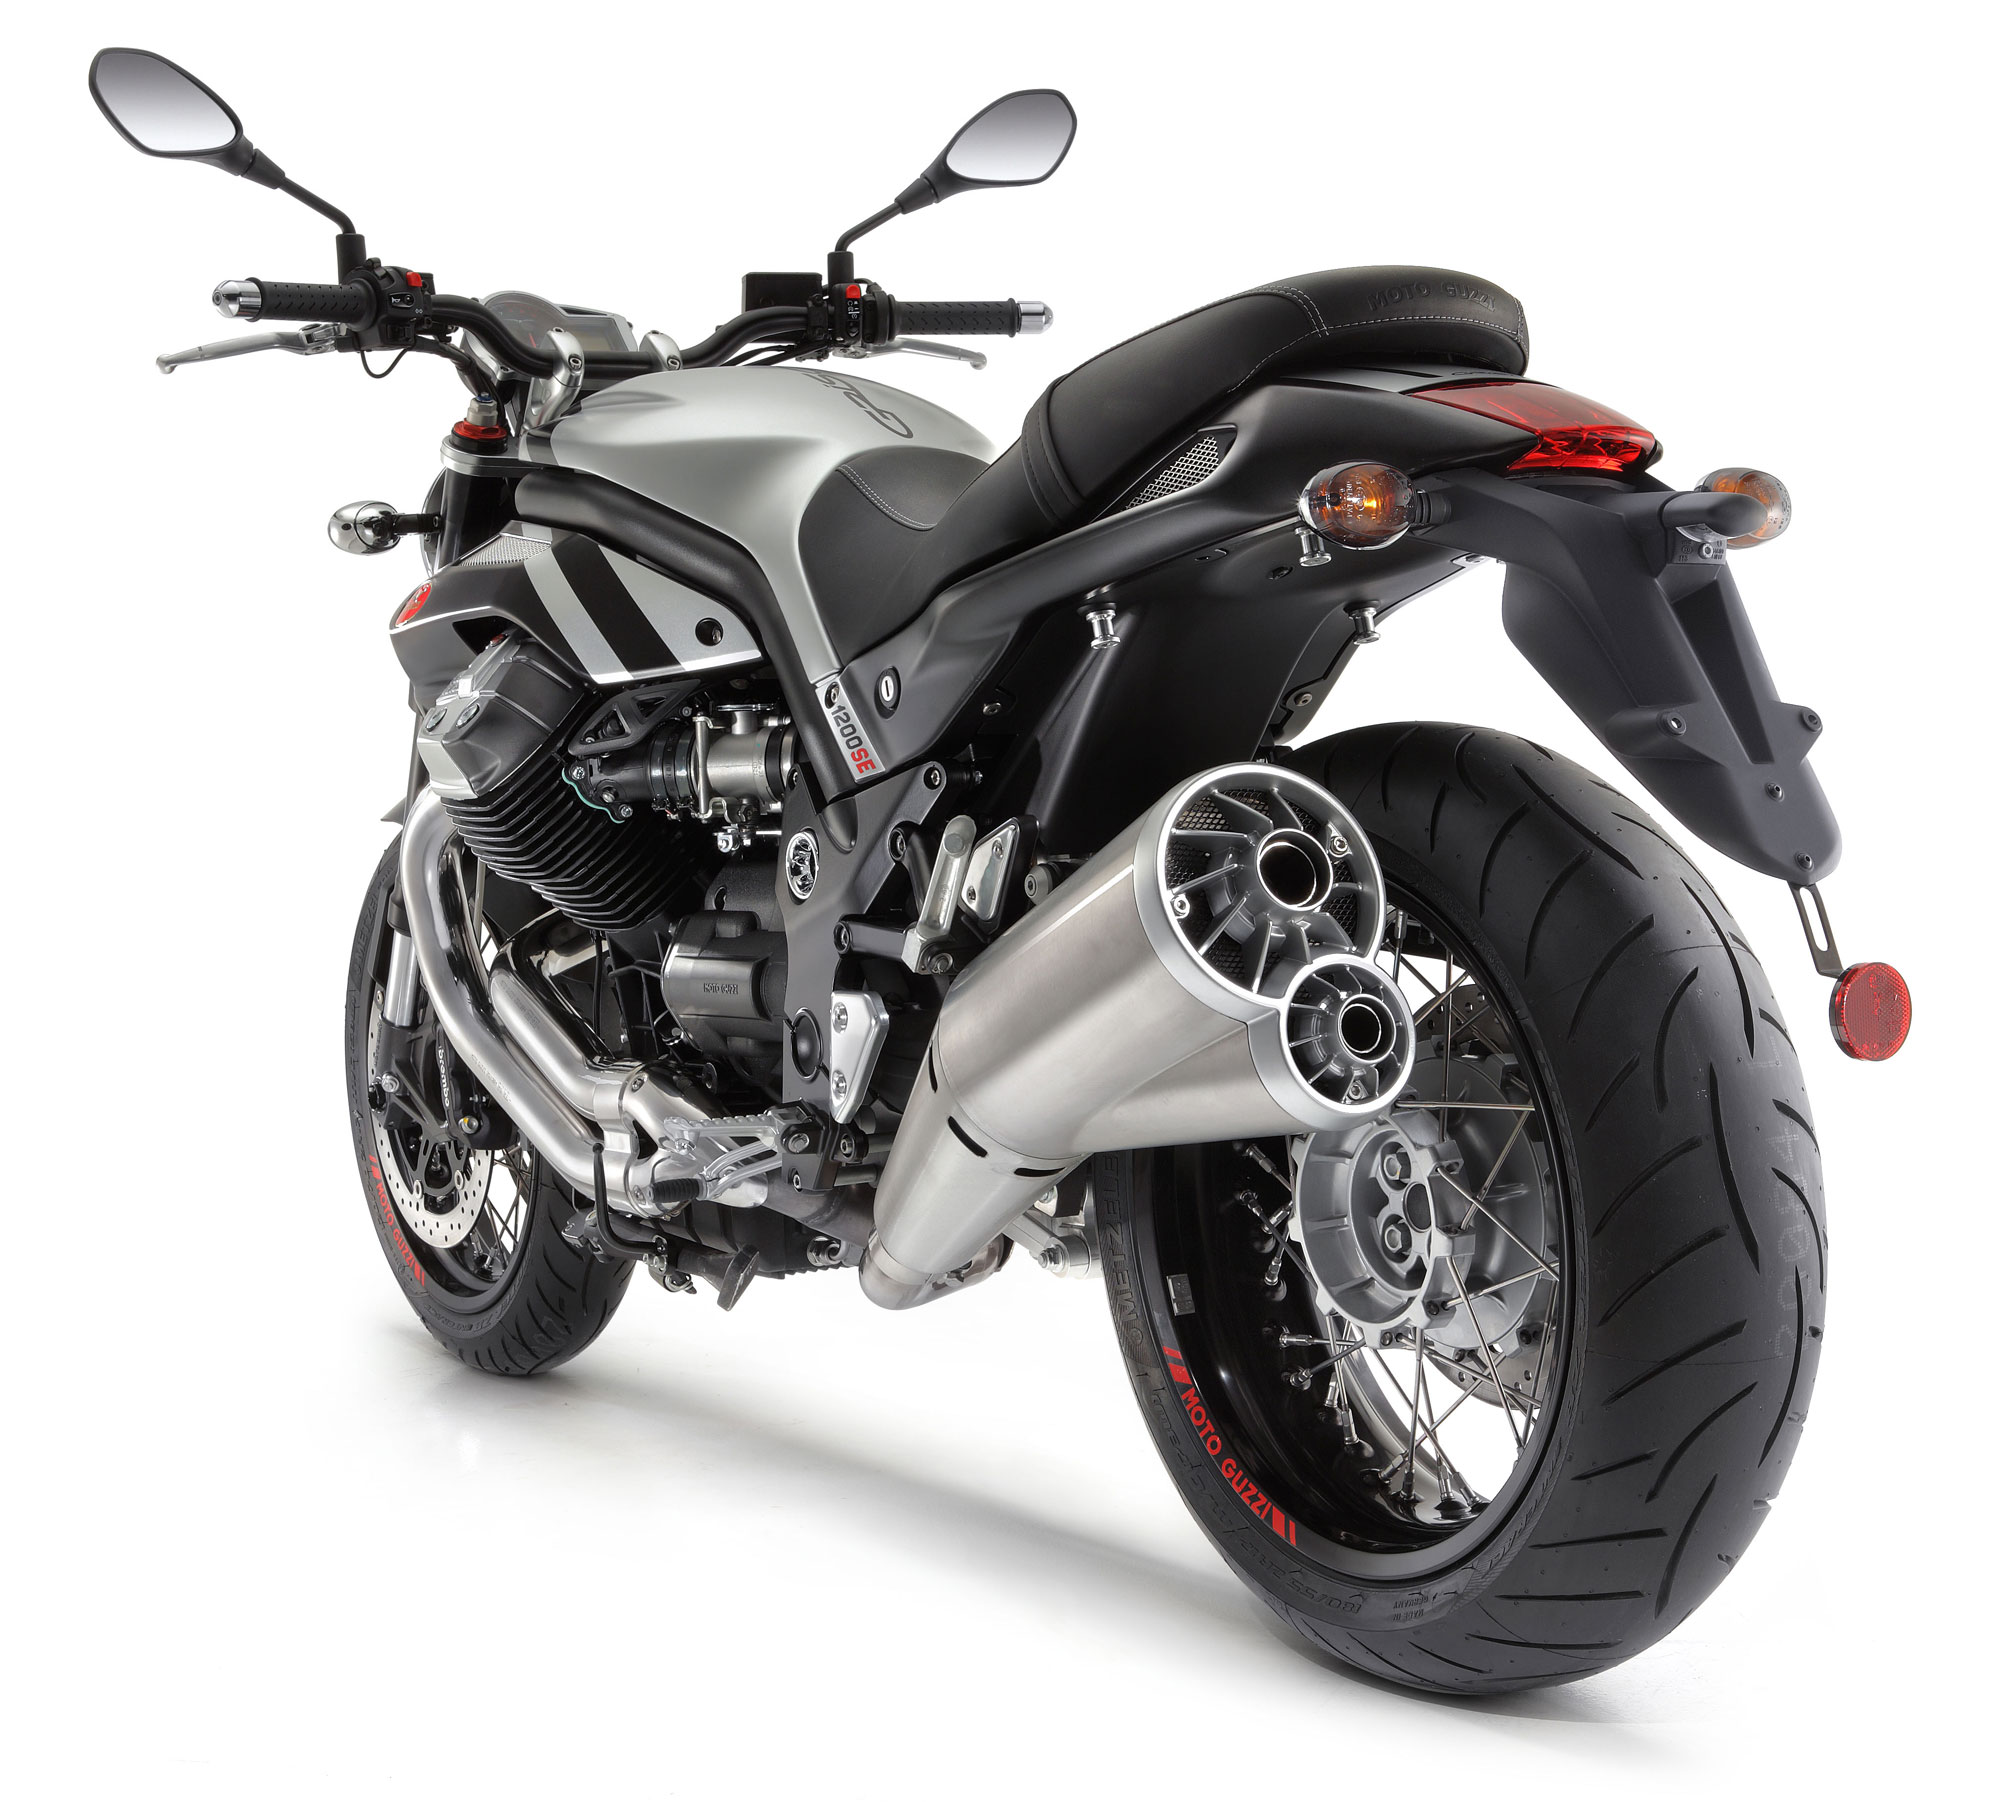 2010 moto guzzi griso 1200 8v pics specs and information. Black Bedroom Furniture Sets. Home Design Ideas